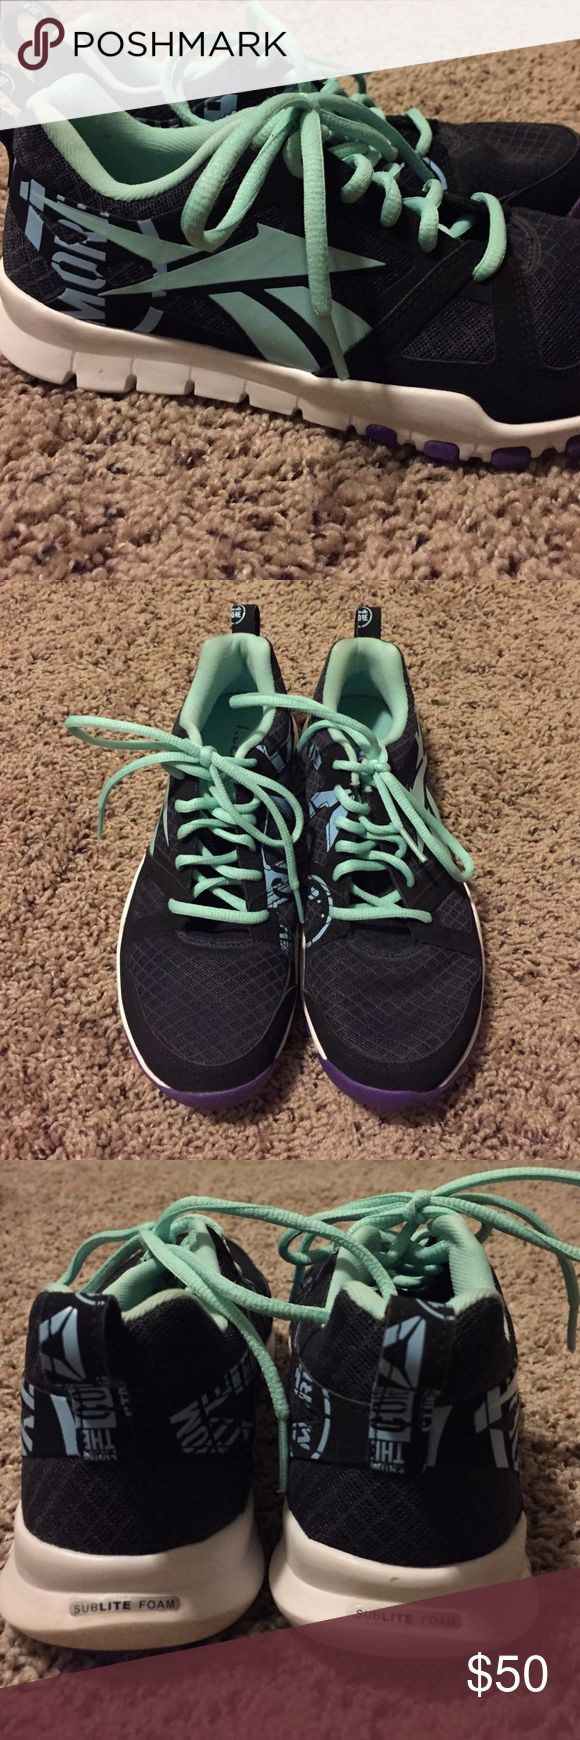 PRICE REDUCED! Reebok crossfit shoes Black and mint green Reebok crossfit sneakers. Only worn a few times. Great condition. Reebok Shoes Athletic Shoes